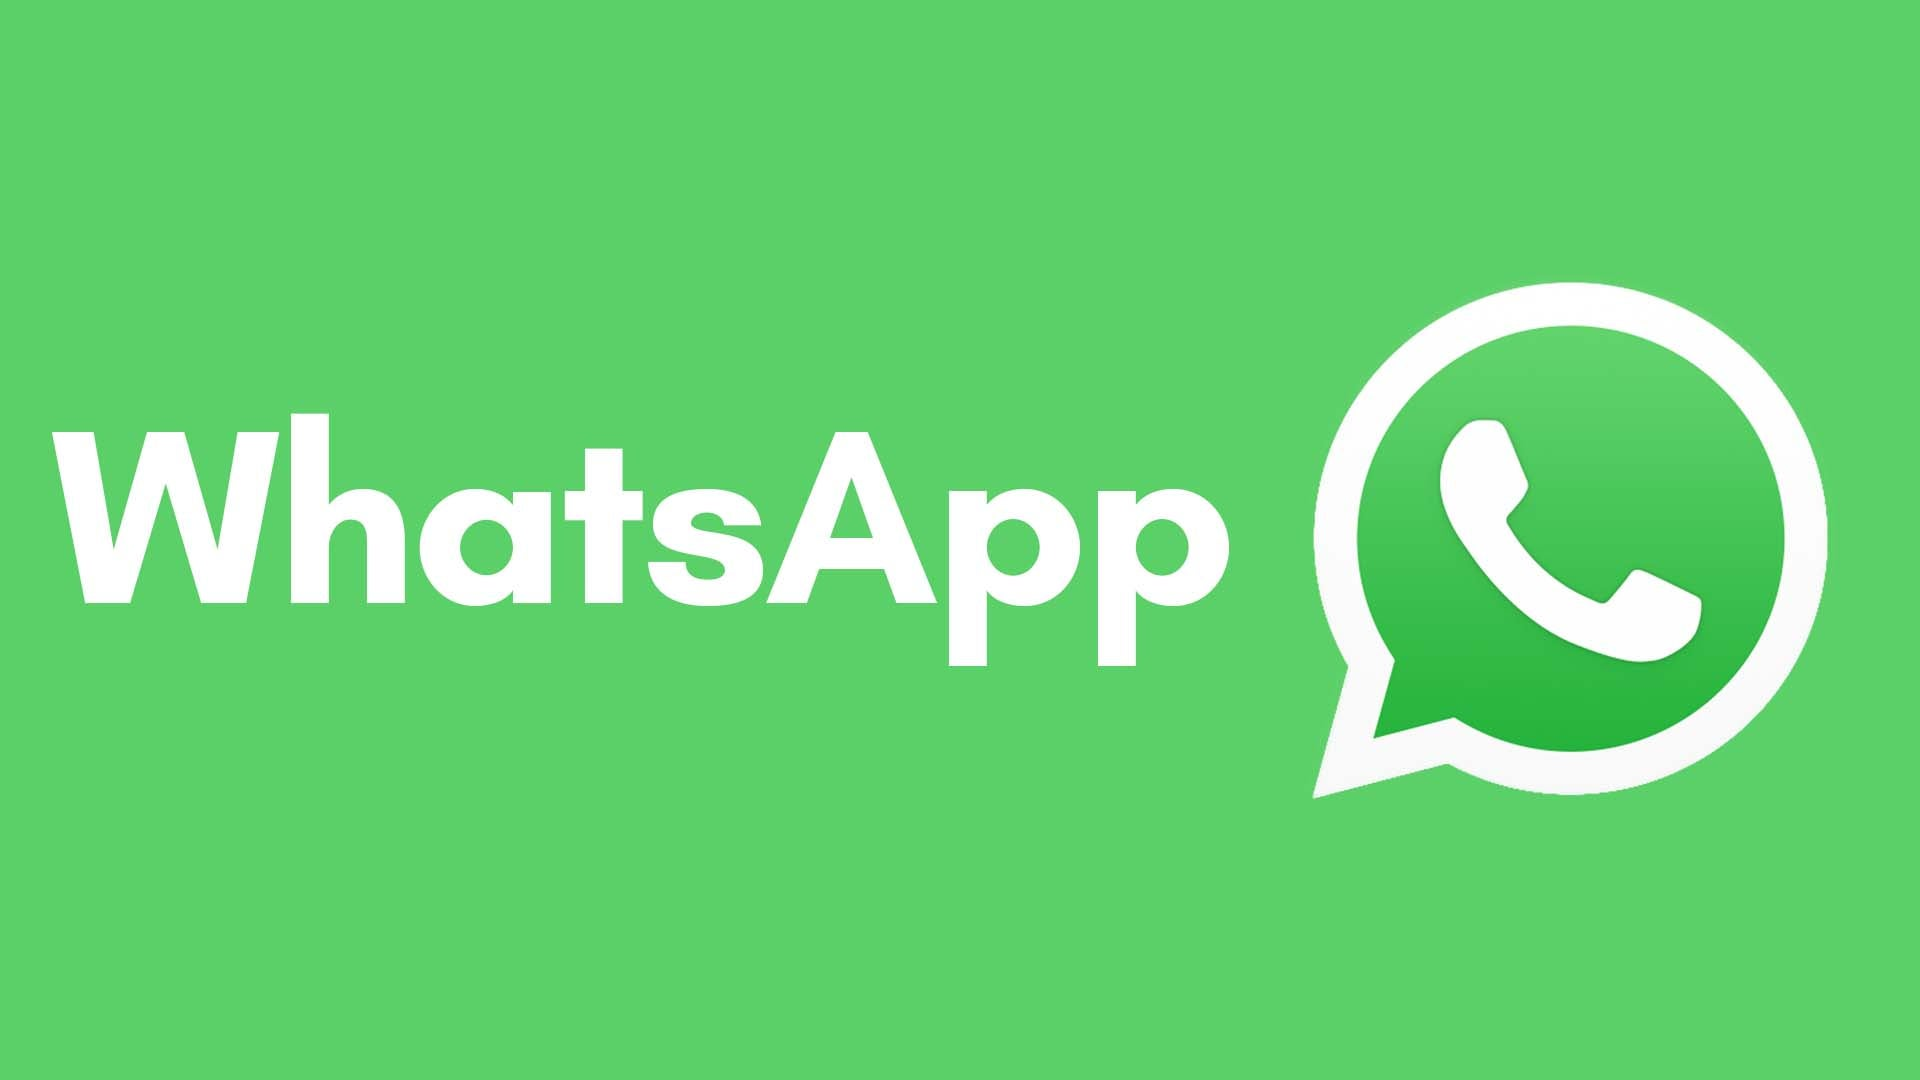 WhatsApp will soon no longer work on loads of phones – check if yours is on the list